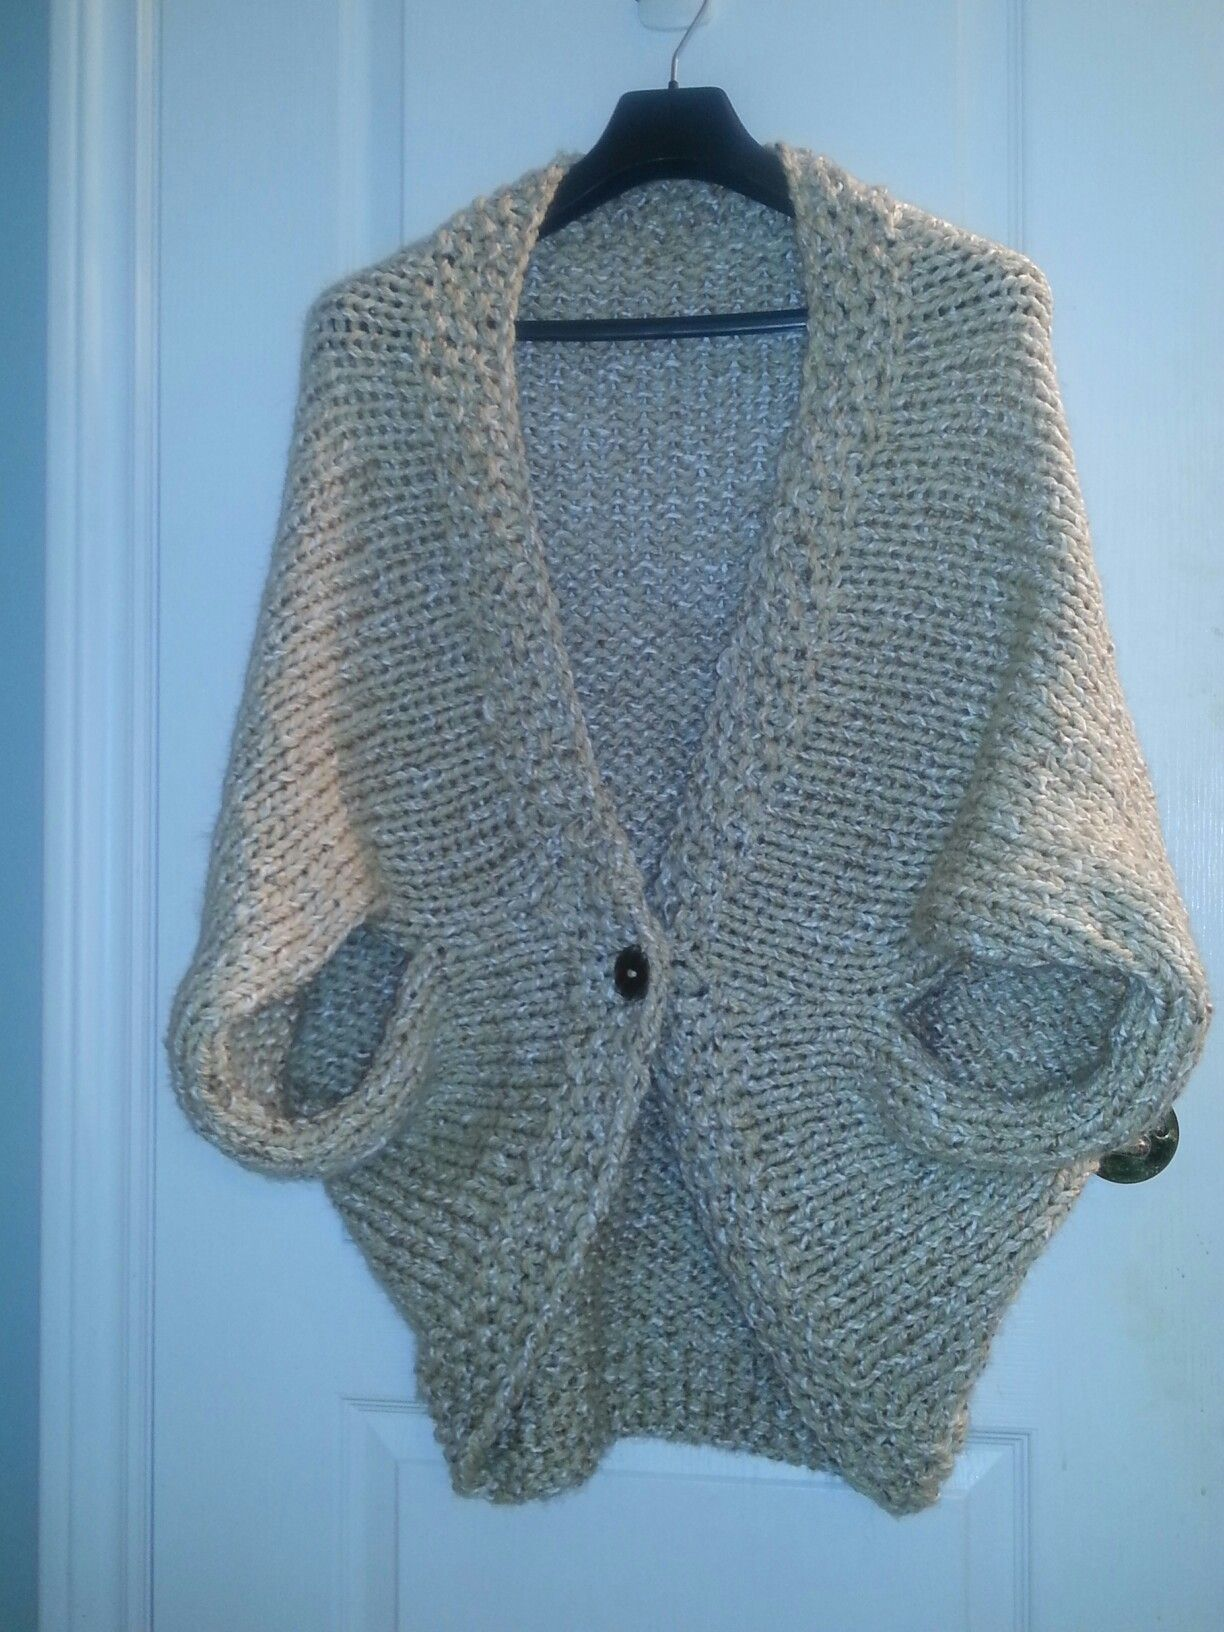 Easy Knit Blanket How To : Knit blanket shrug I made. Pattern can be found at: http://www.mamainastitch....